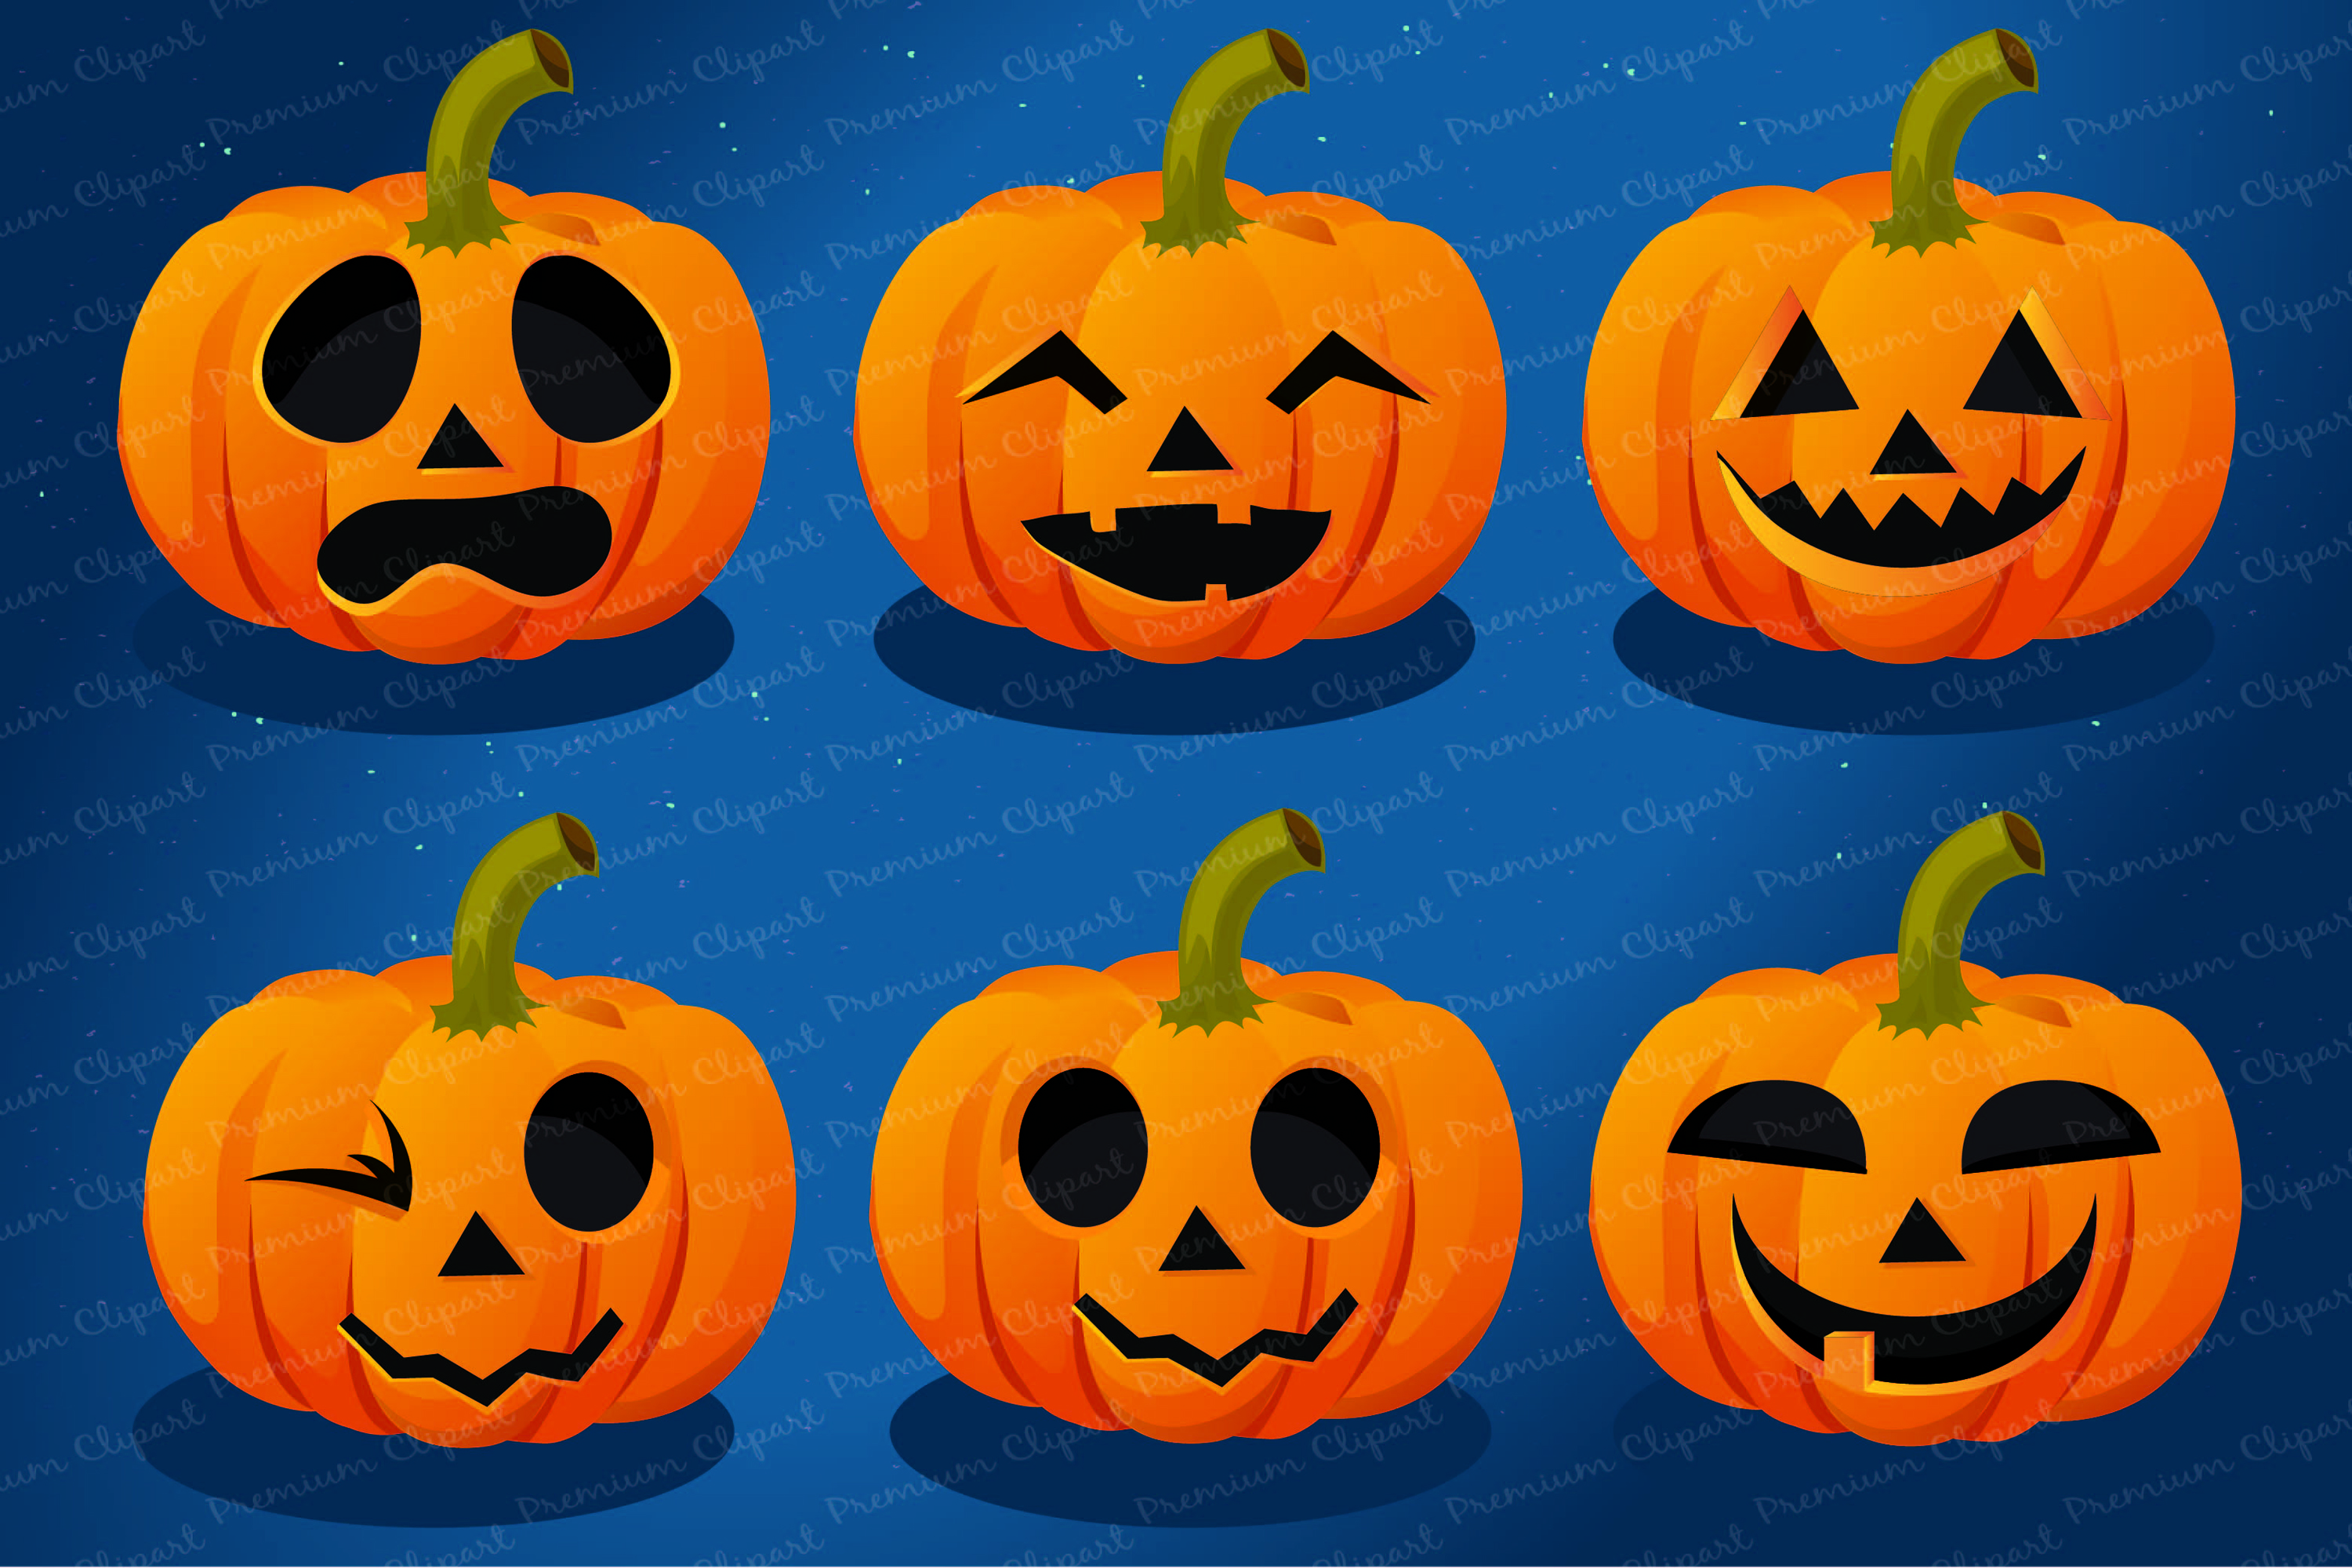 Halloween bundle, Halloween illustrations, Halloween pumpkin example image 8